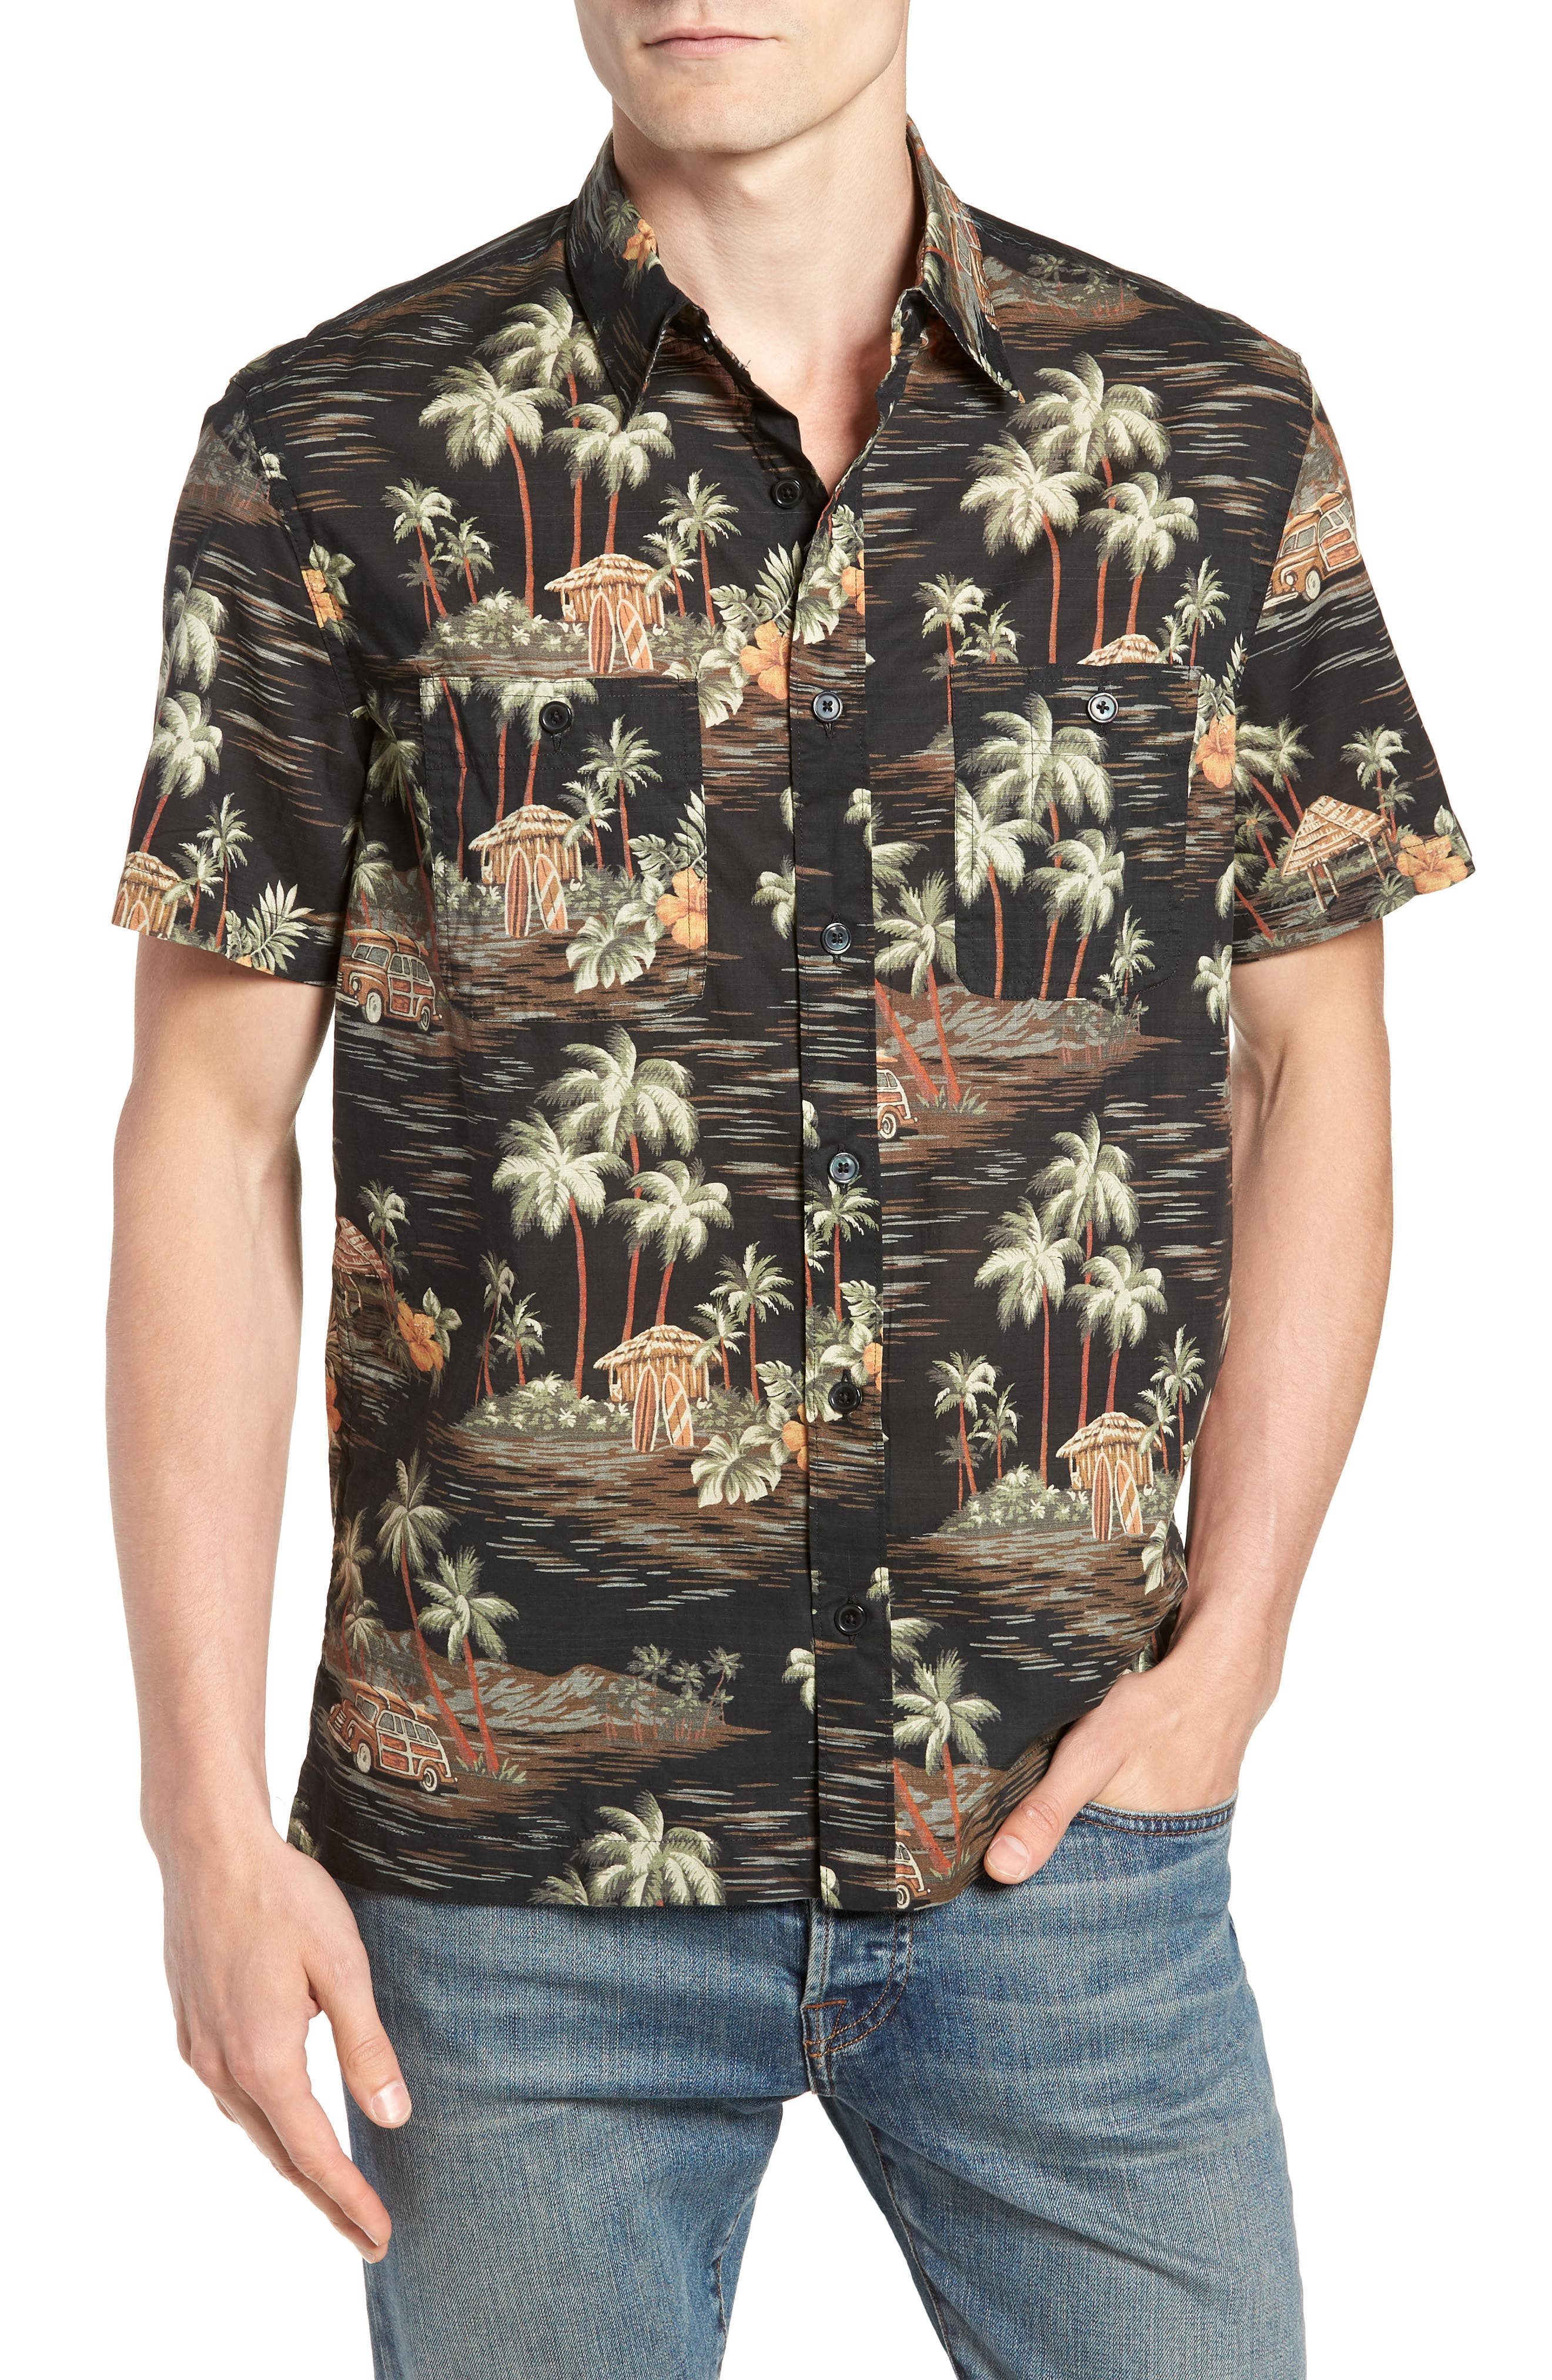 Wallace & Barnes Regular Fit Tropical Print Sport Shirt,                             Main thumbnail 1, color,                             Black Multi